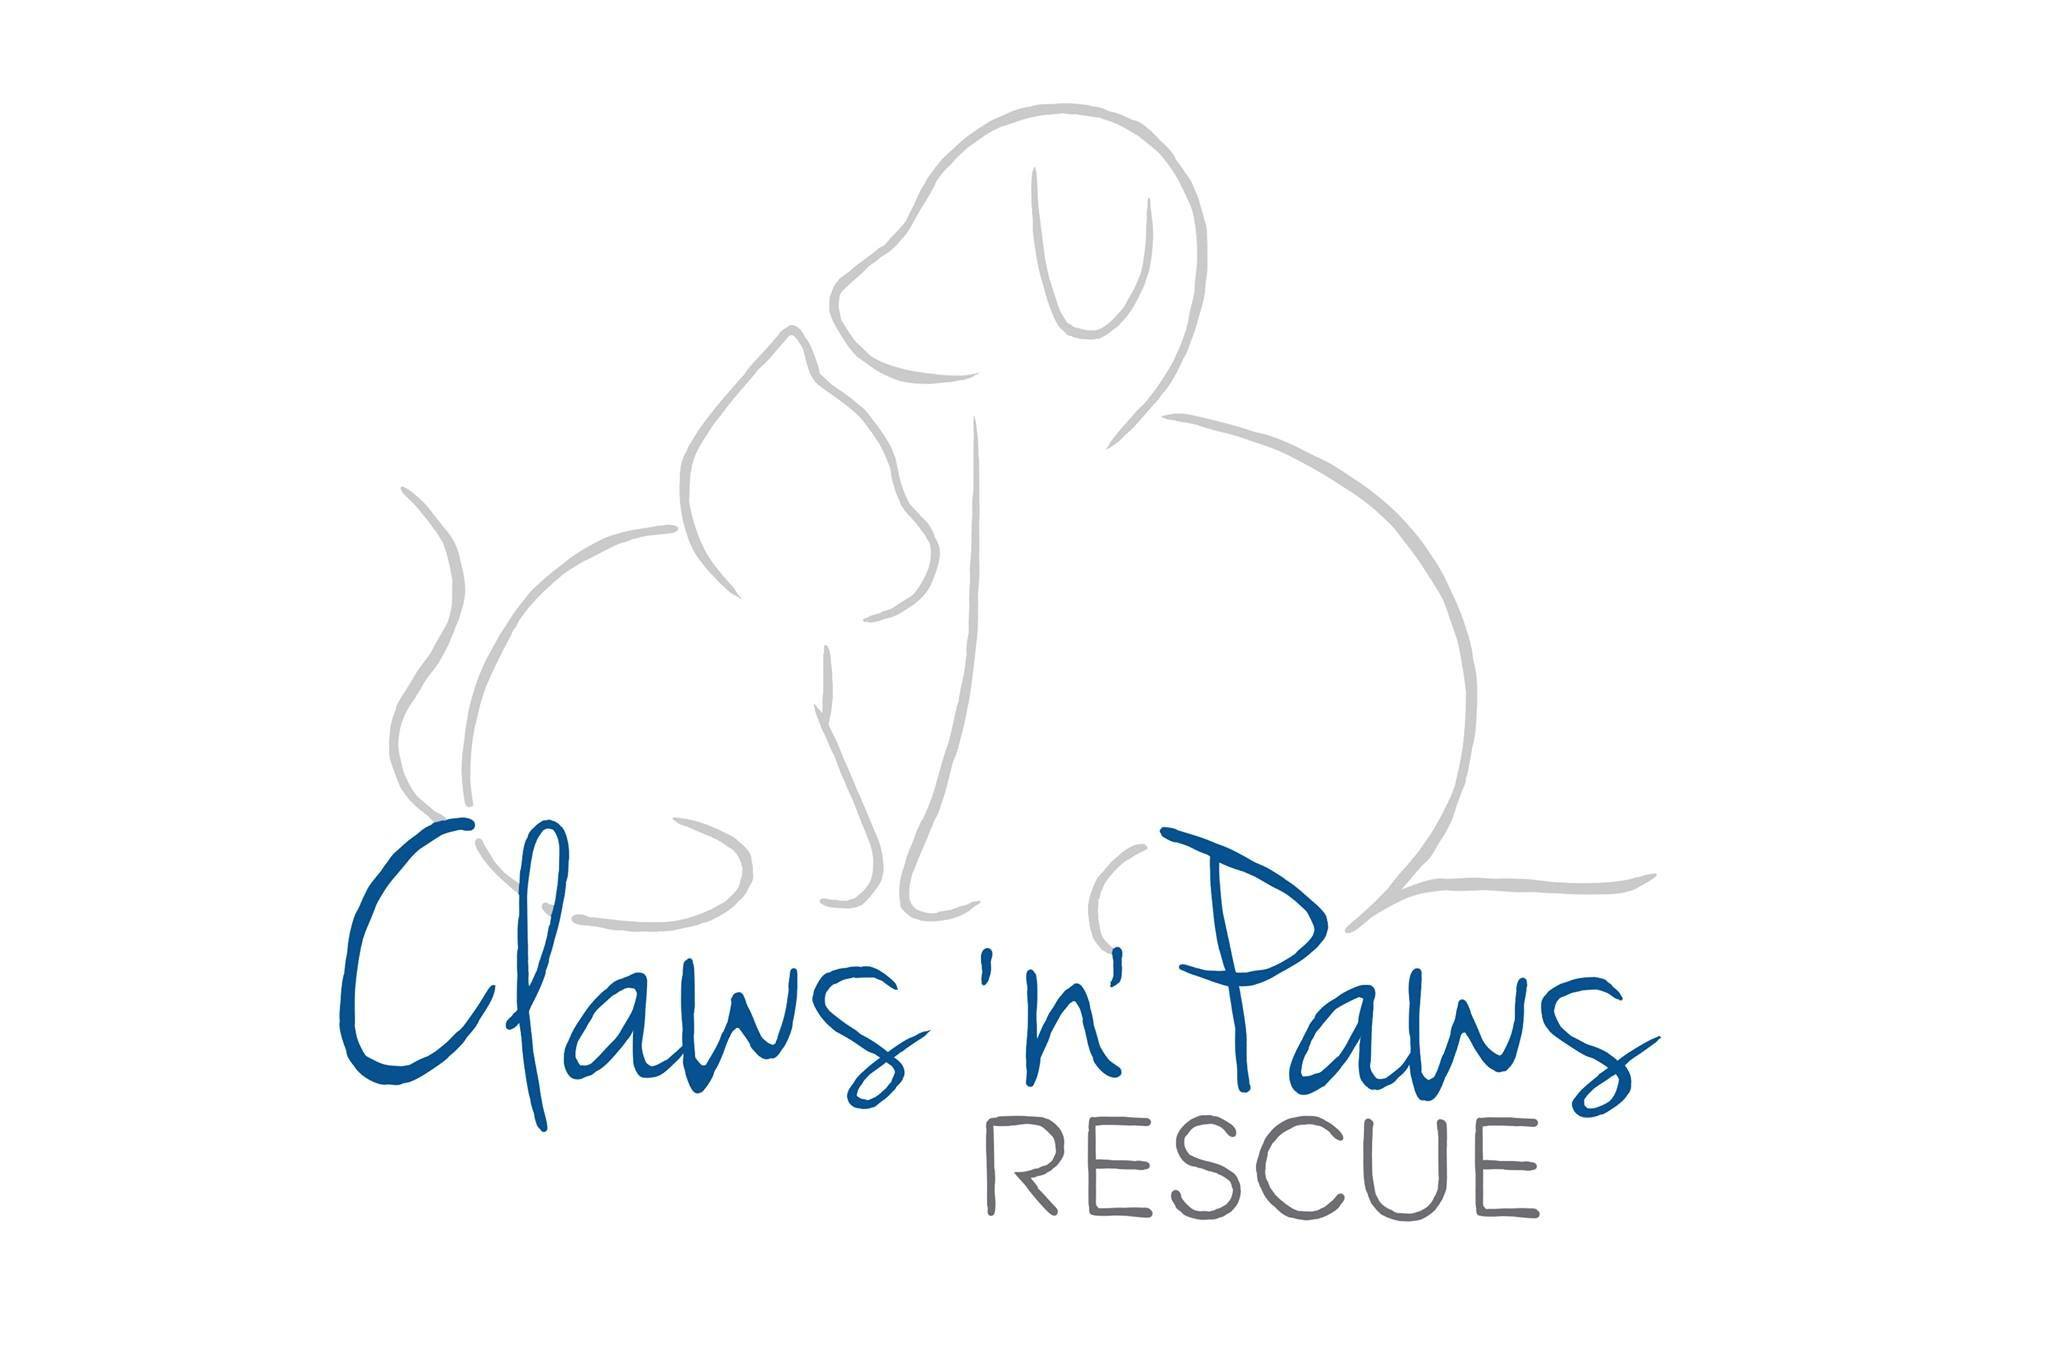 Claws N Paws Pet Rescue